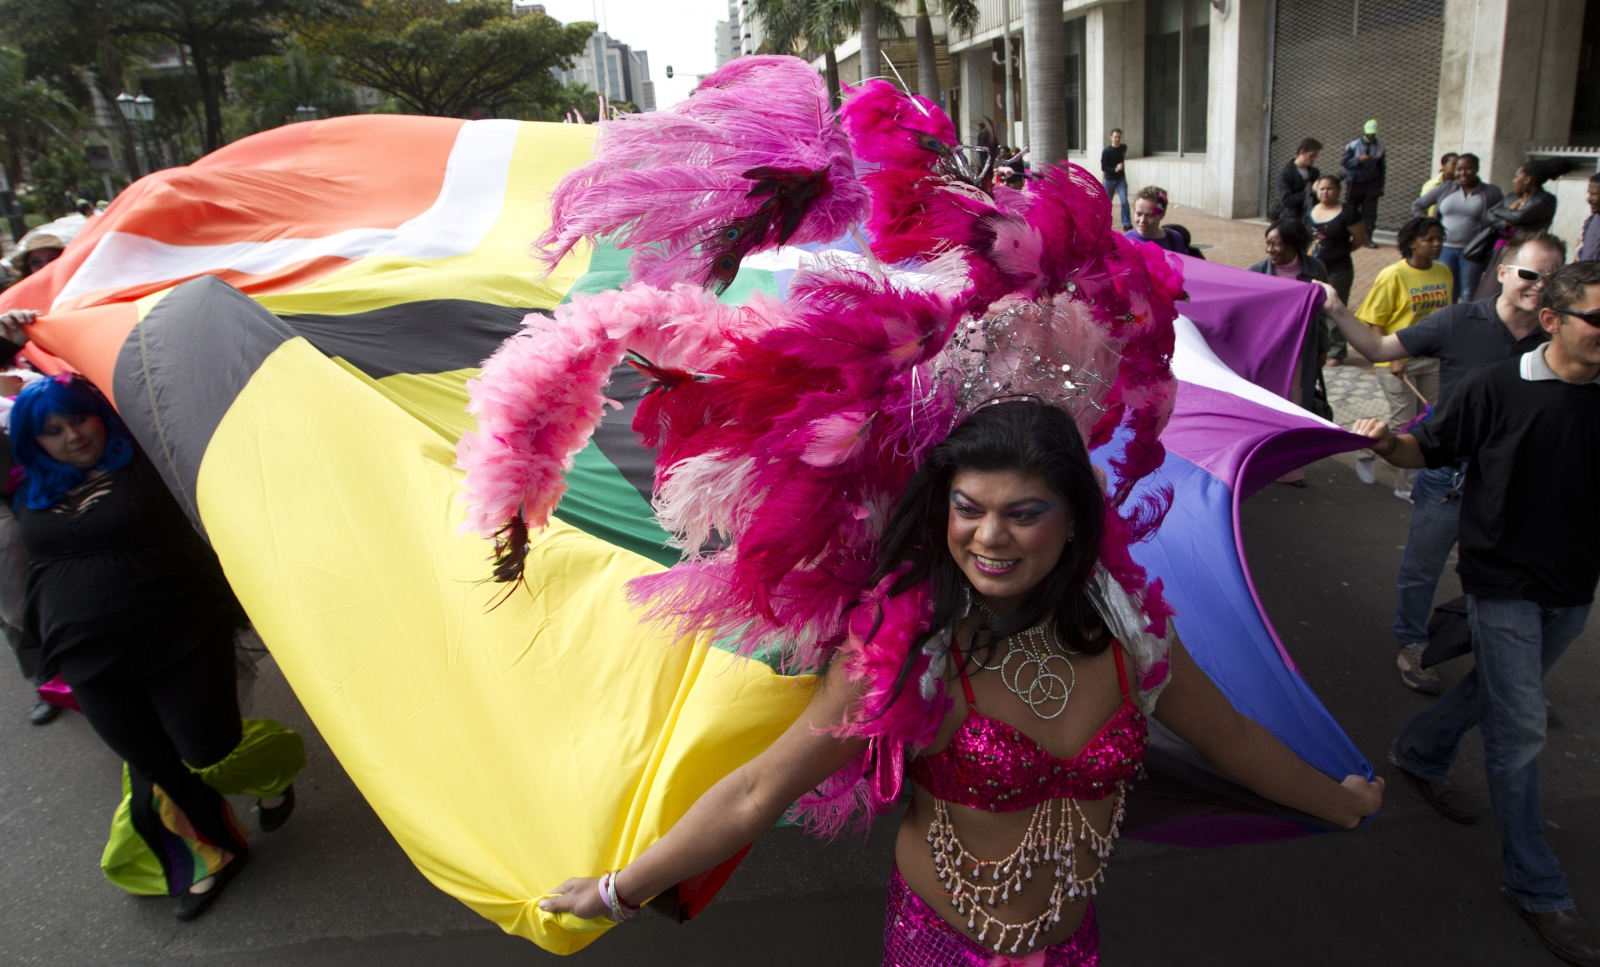 A drag queen participates in Durban Pride where several hundred people marched through the Durban city centre in support of gay rights, July 30, 2011